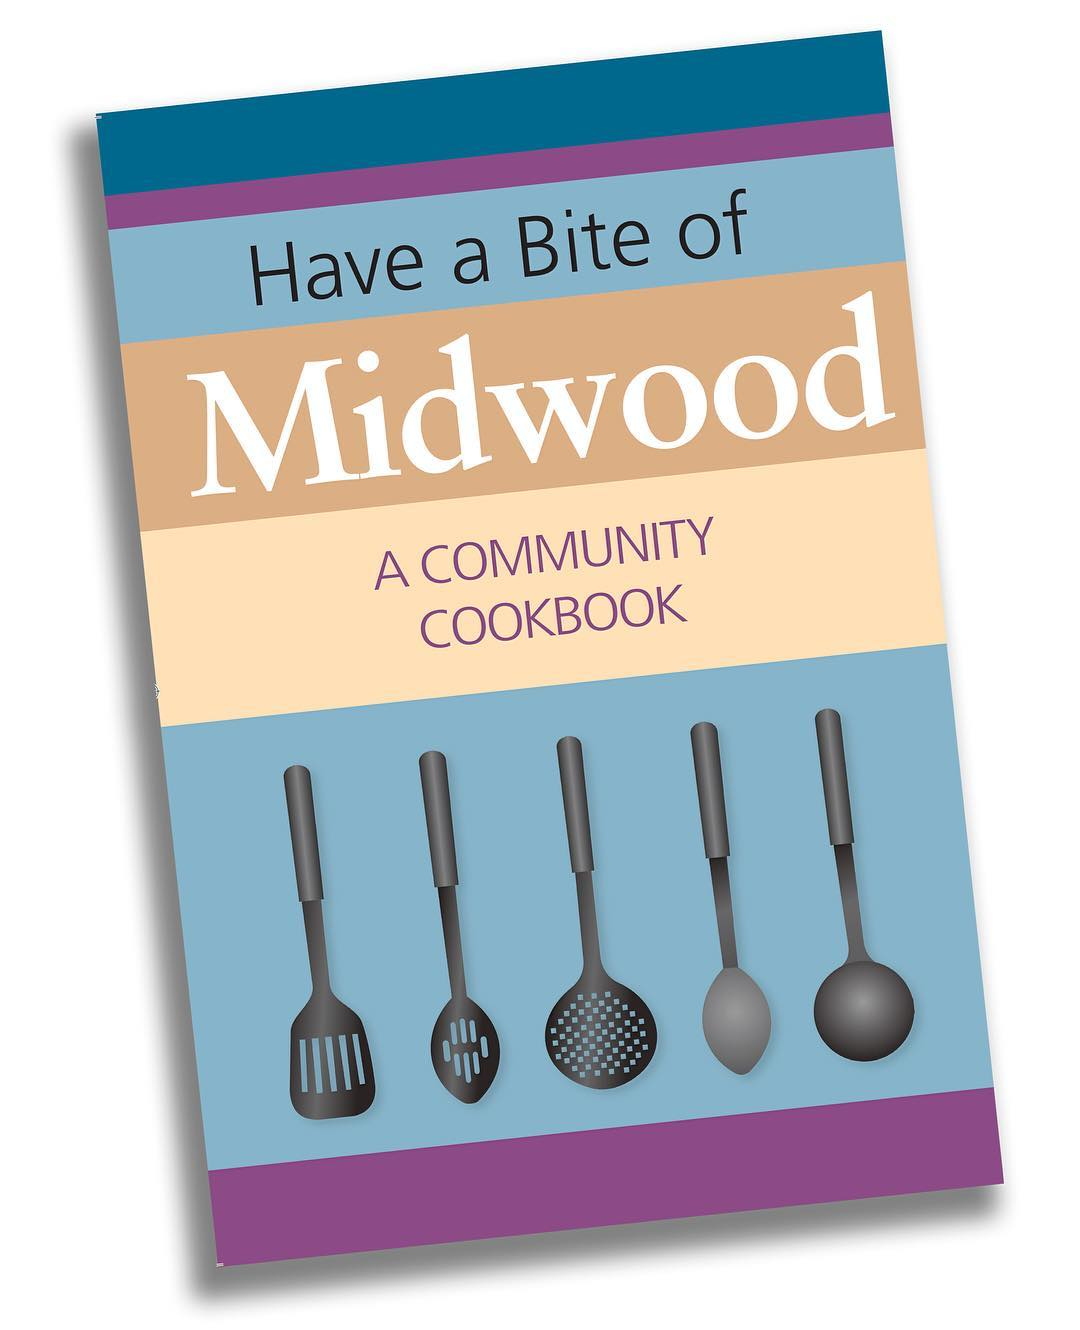 Cooking season is here! Have a Bite of Midwood ishellip